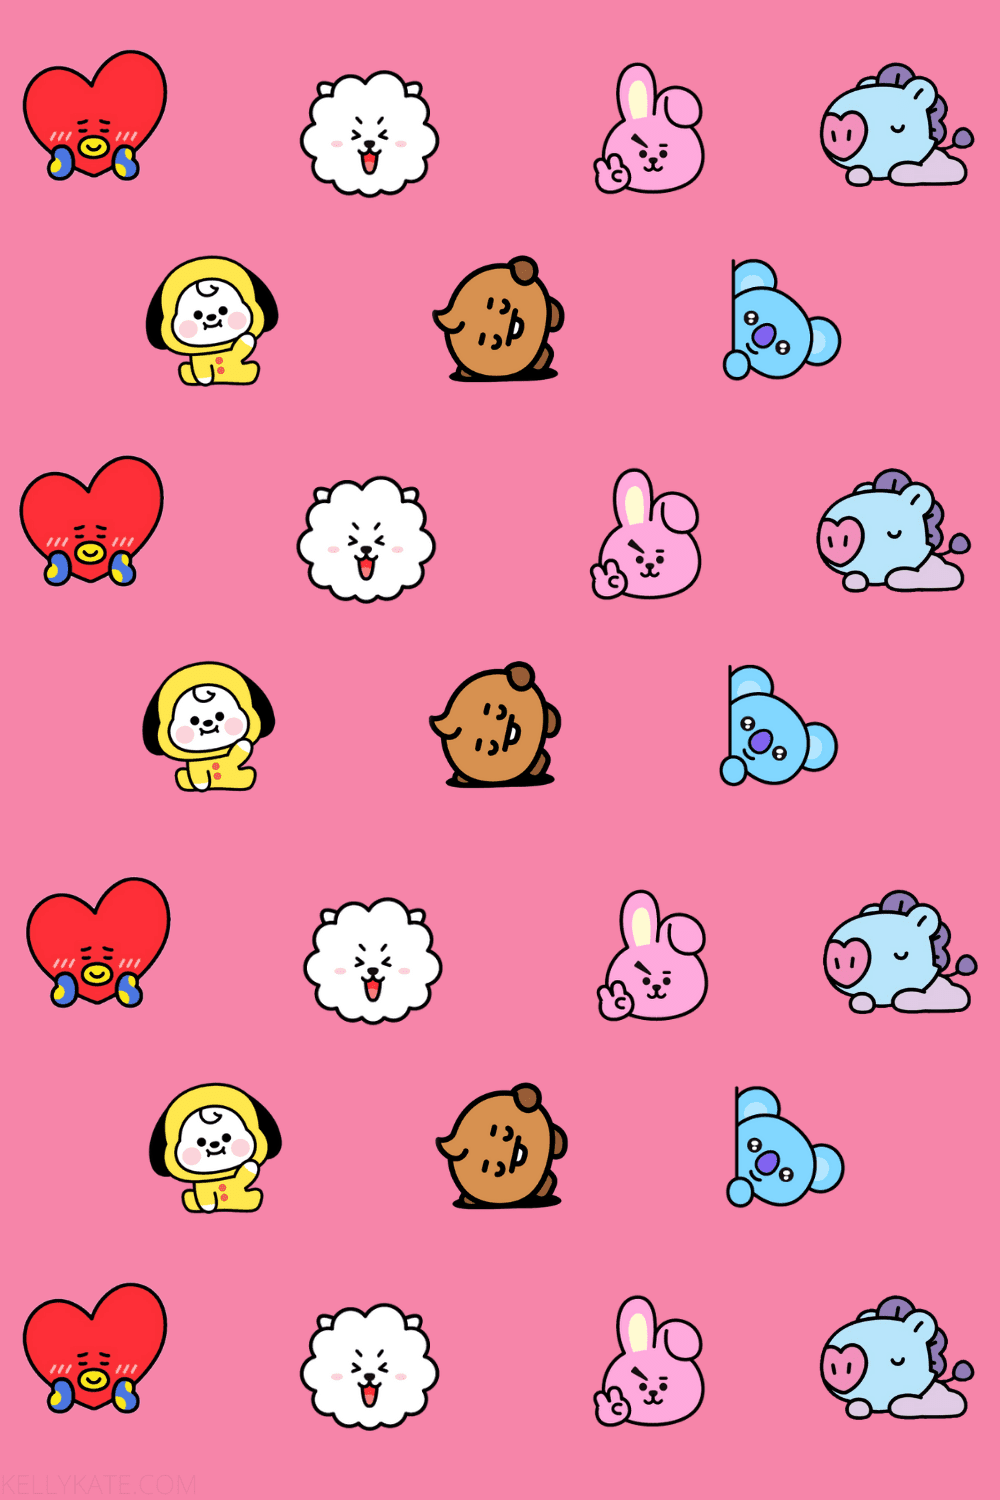 #wallpaperbt21 #bts